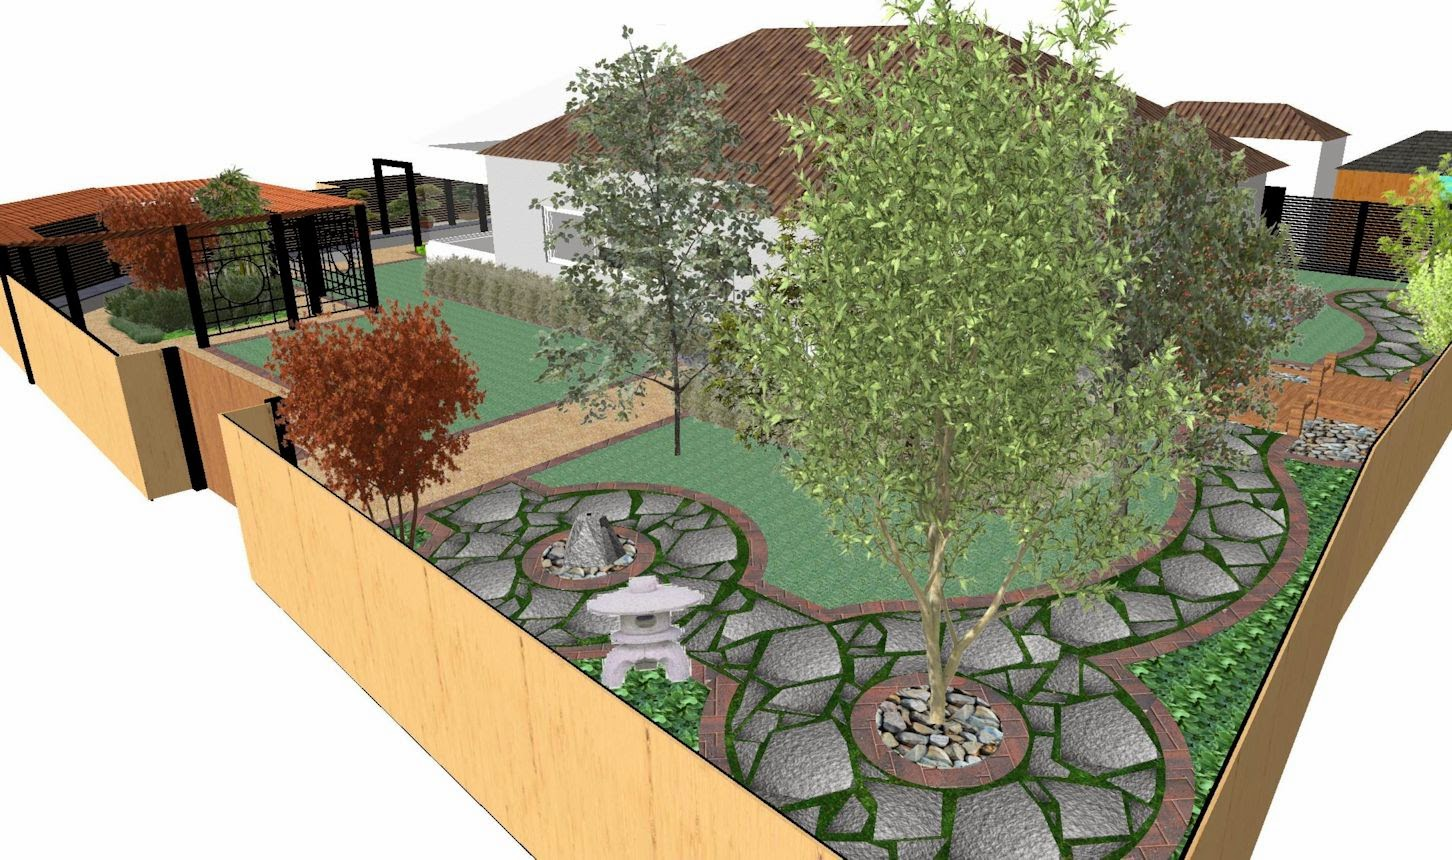 Life Designing: Japanese Garden Design in Reading 1452 x 860